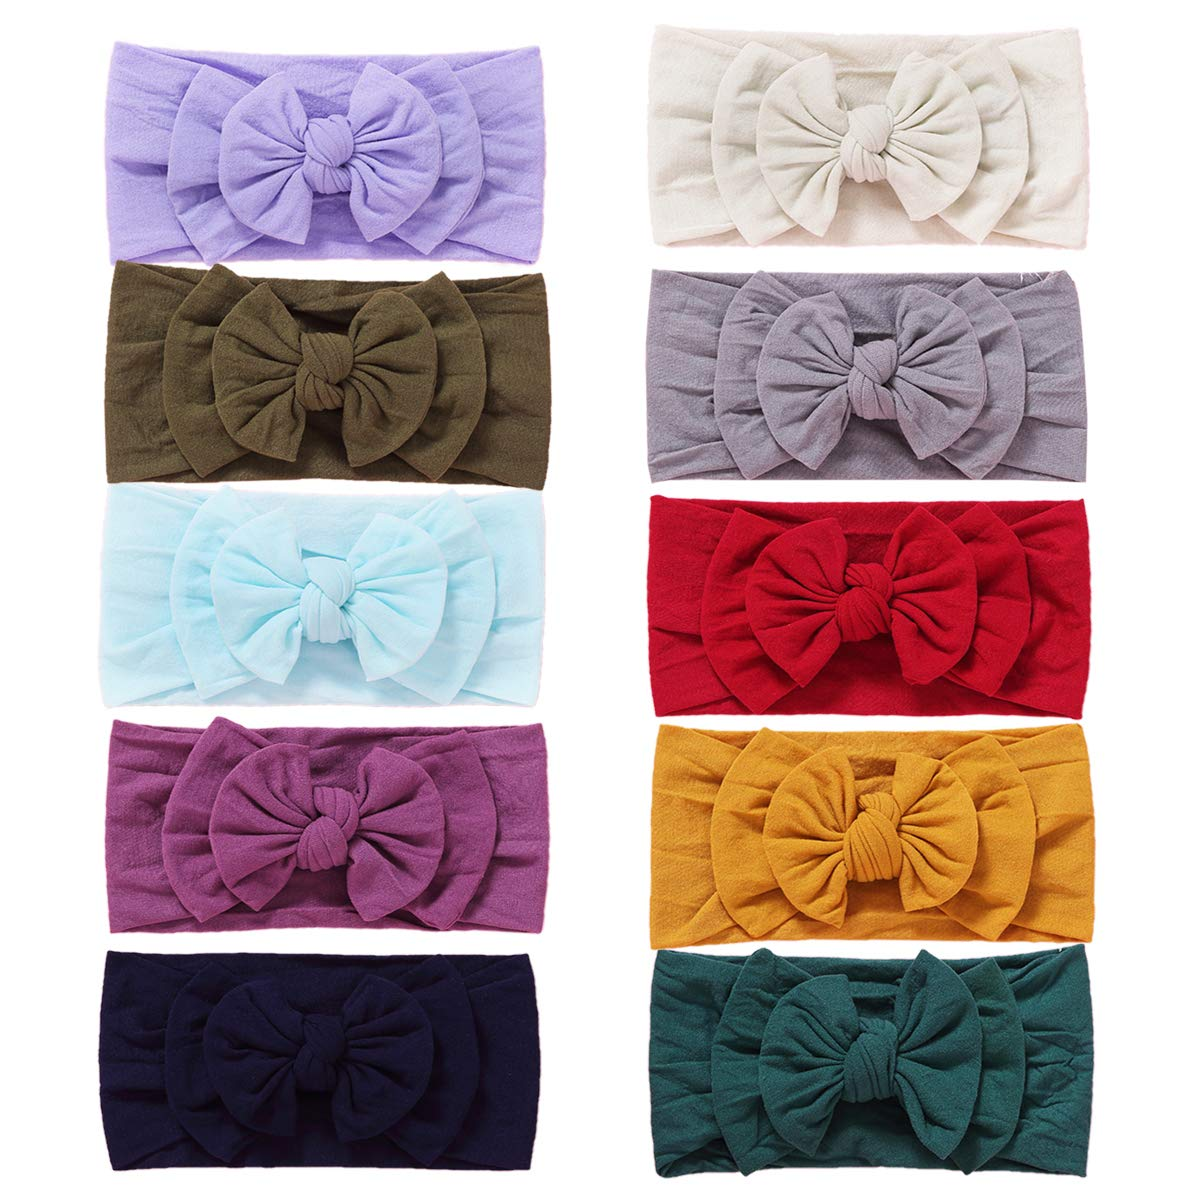 Challenge the lowest price Baby Miami Mall Girl Nylon Headbands Newborn Infant B Hairbands and Toddler